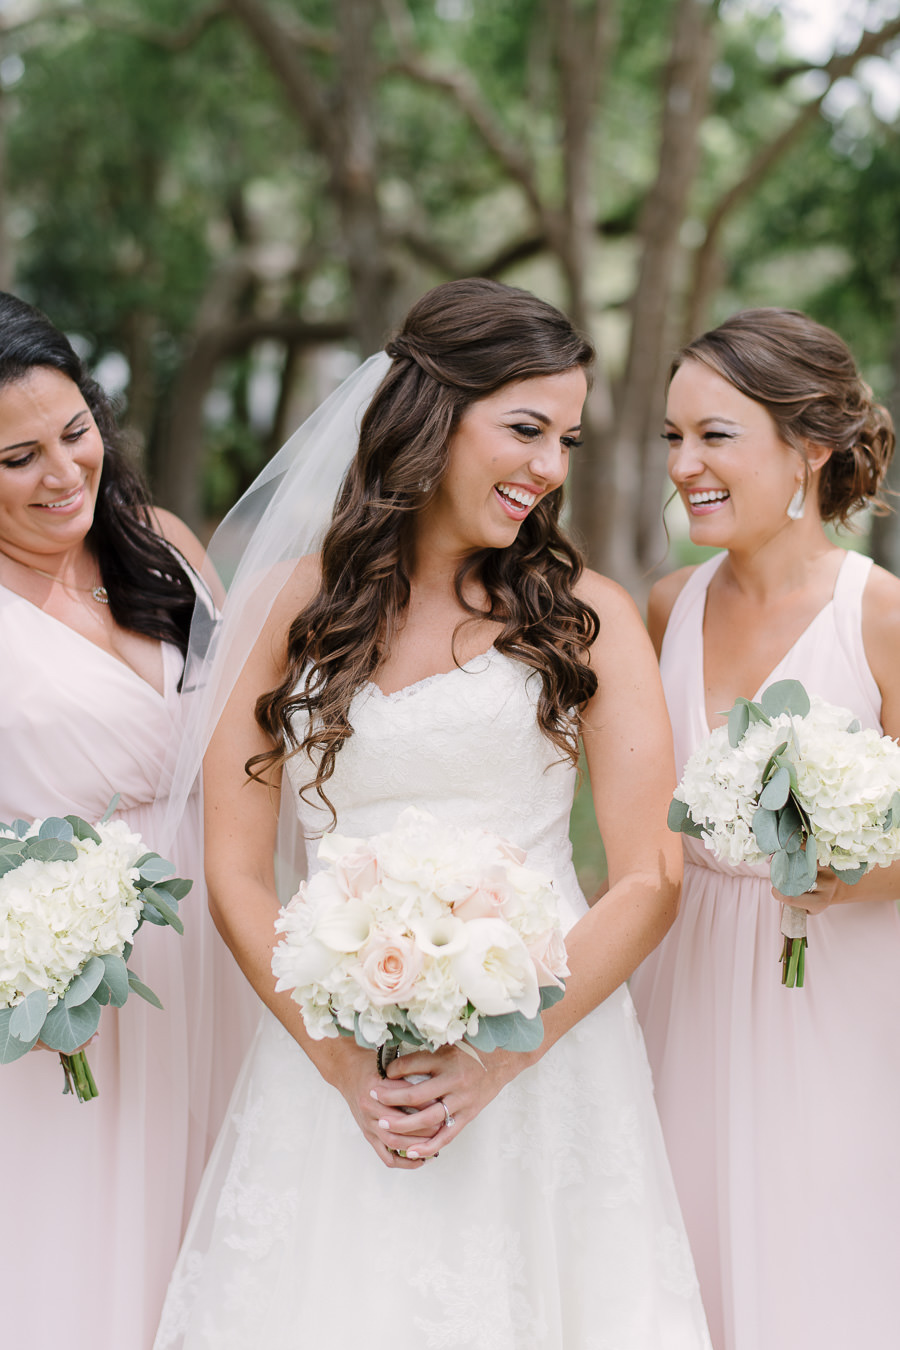 Outdoor Portrait of Bride in Watters Wedding Dress with Rose and Hydrangea Bouquet with Greenery and Blush Pink Mismatched Hayley Paige Bridesmaids Dresses